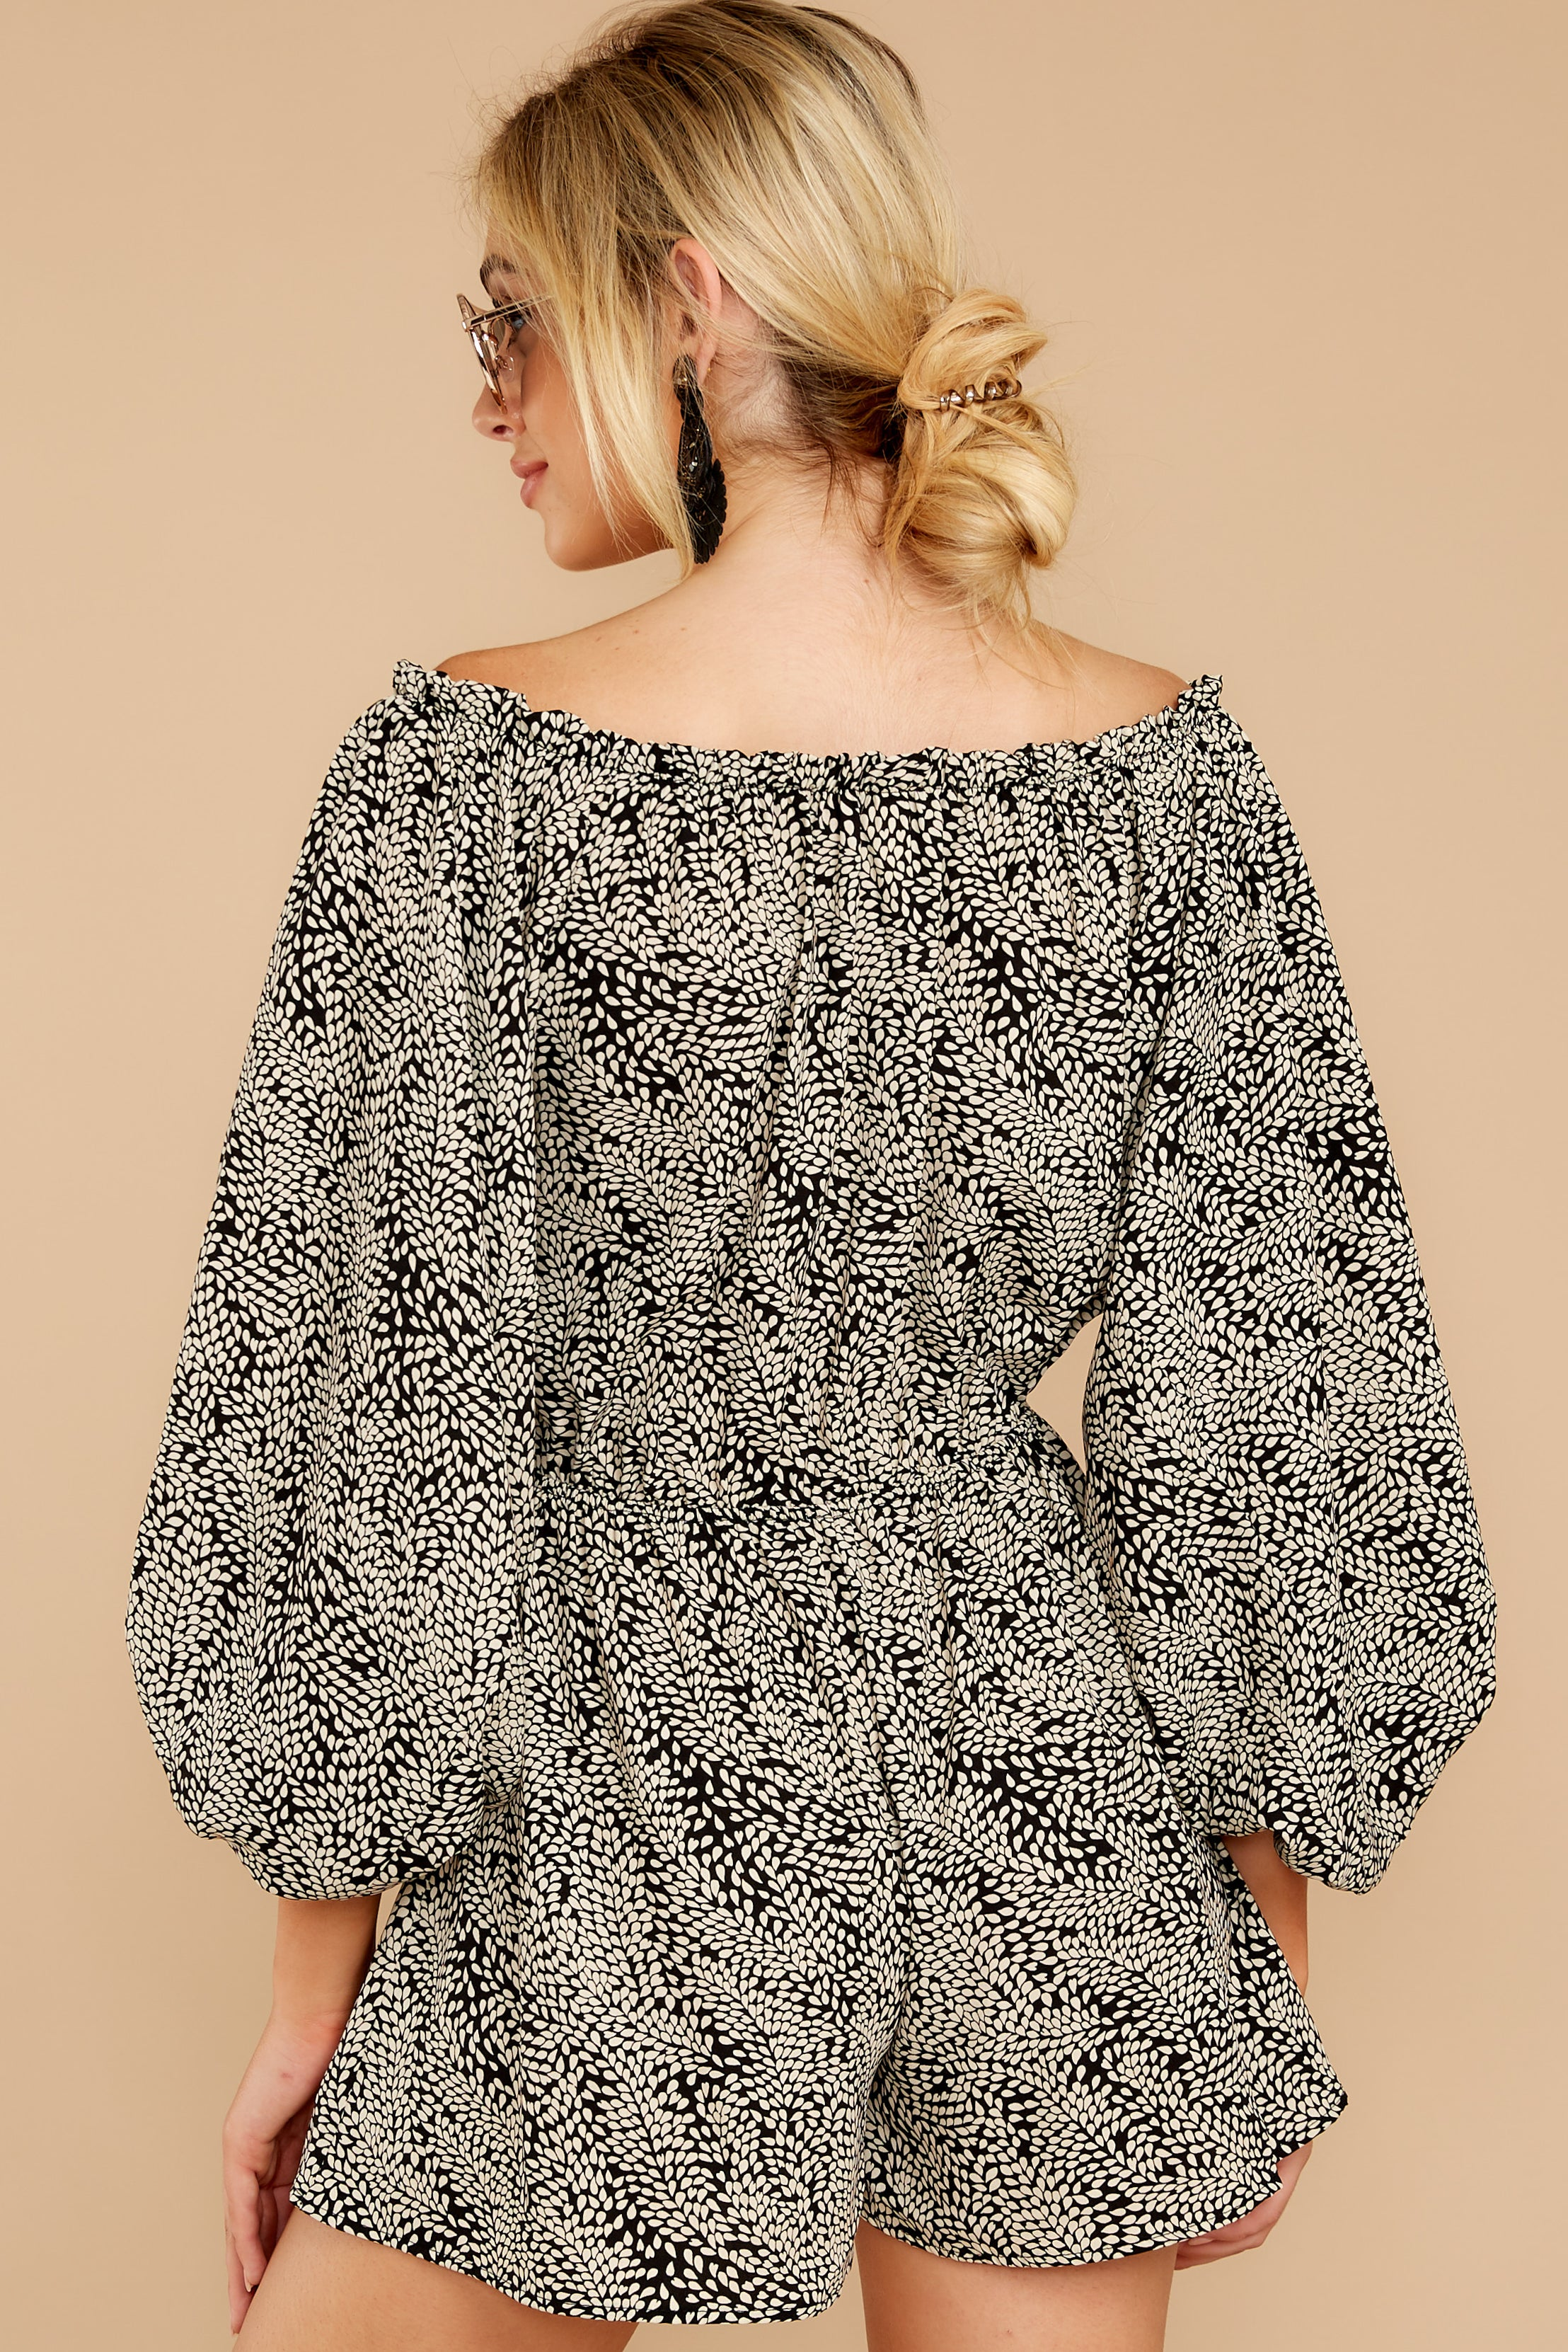 9 Dream By Night Black And Ivory Print Romper at reddressboutique.com